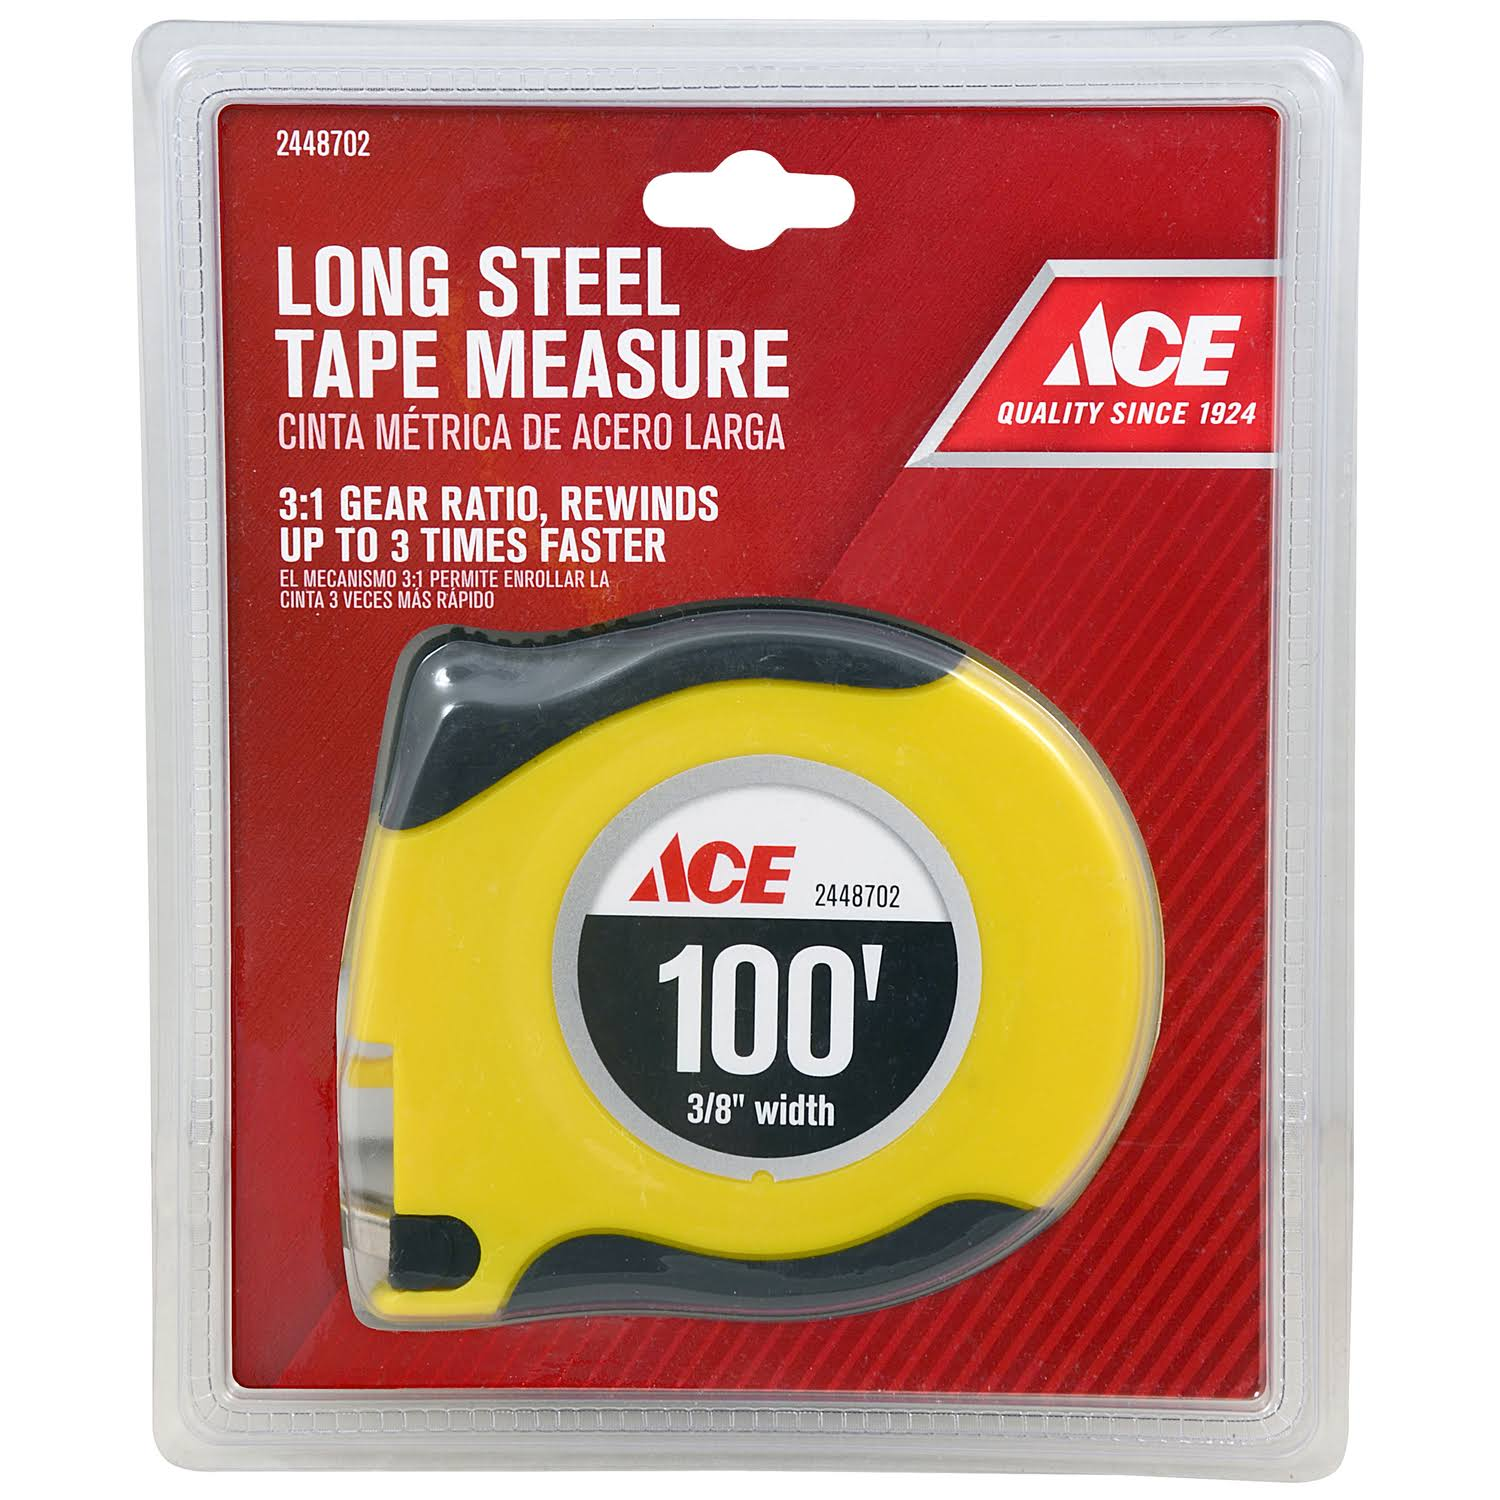 Ace 2448702 100 ft x 0.375 in. Tape Measure Yellow 1 Pk